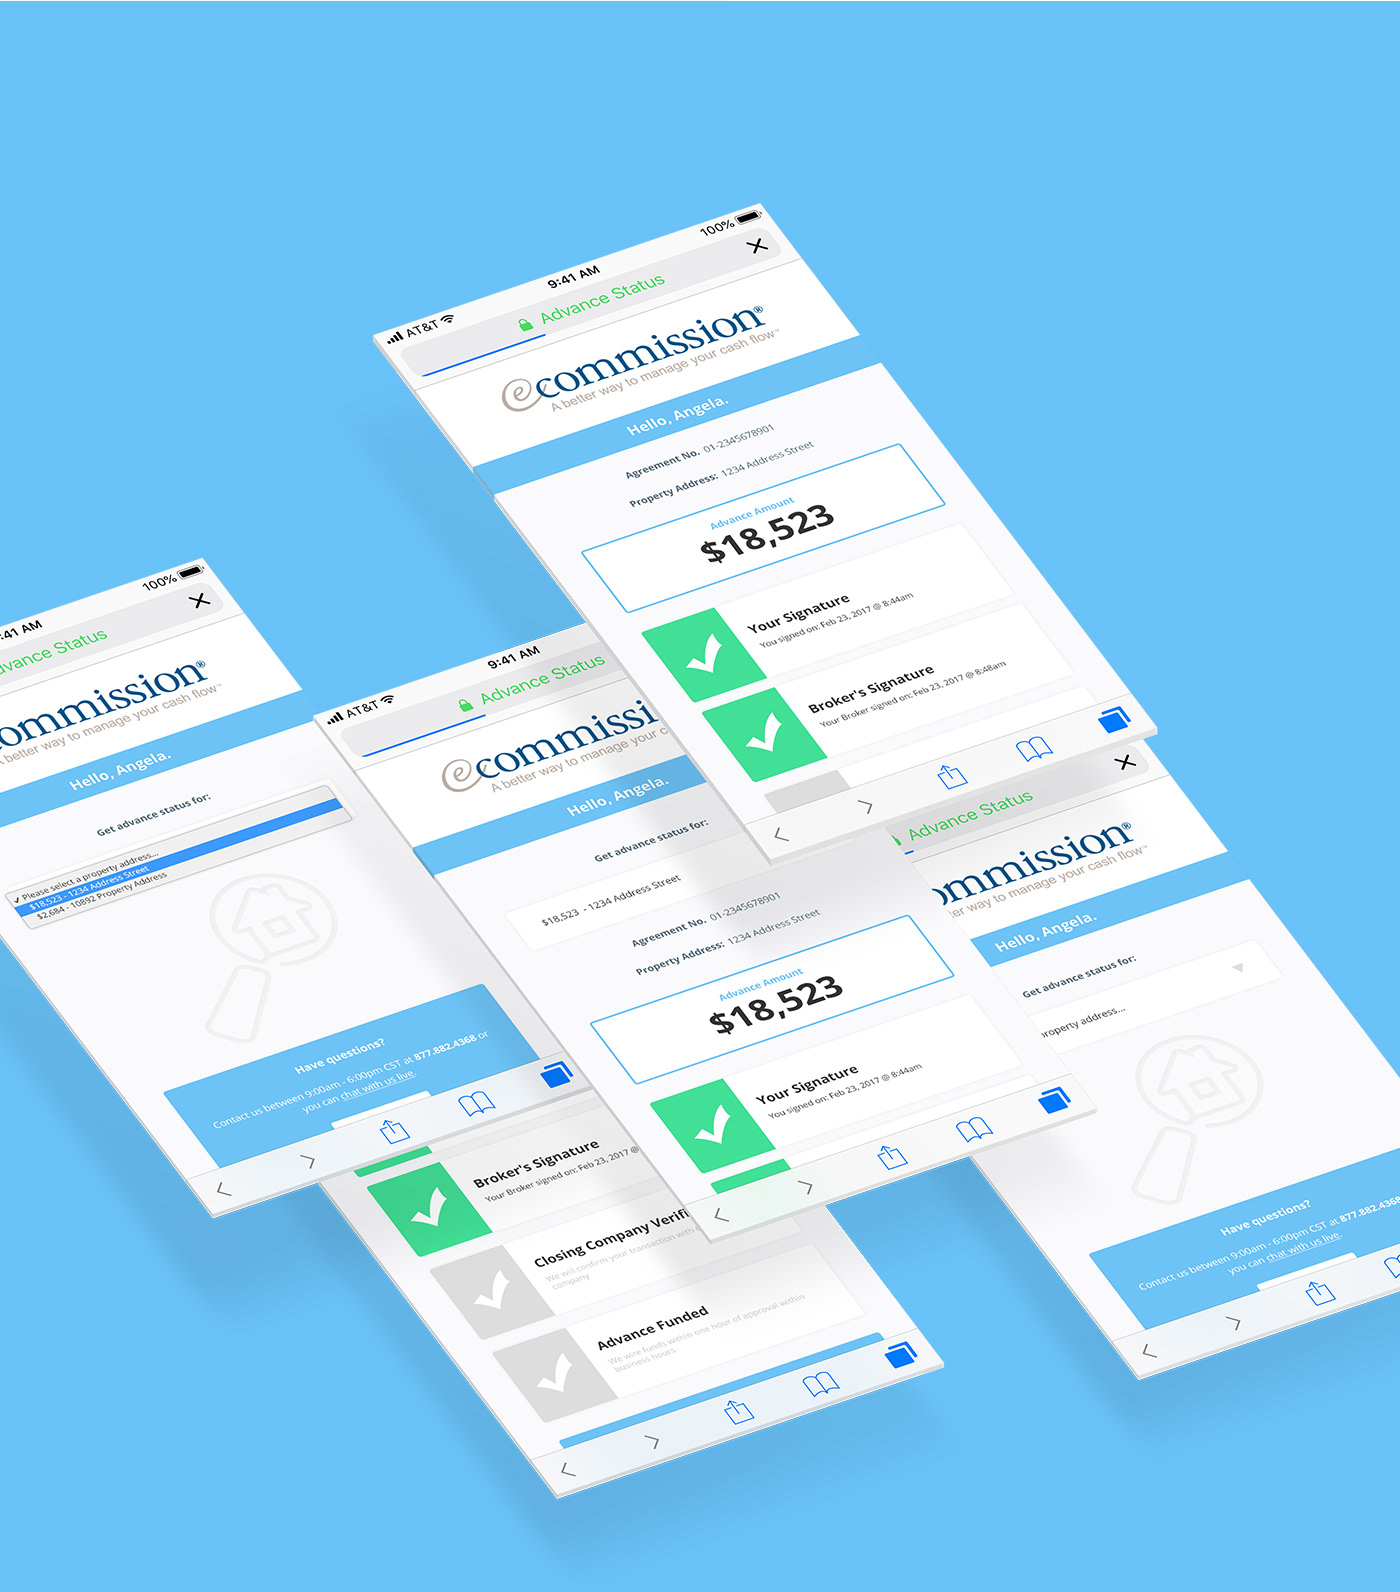 UI ux interaction Interface Experience digital app art direction  interactive mobile